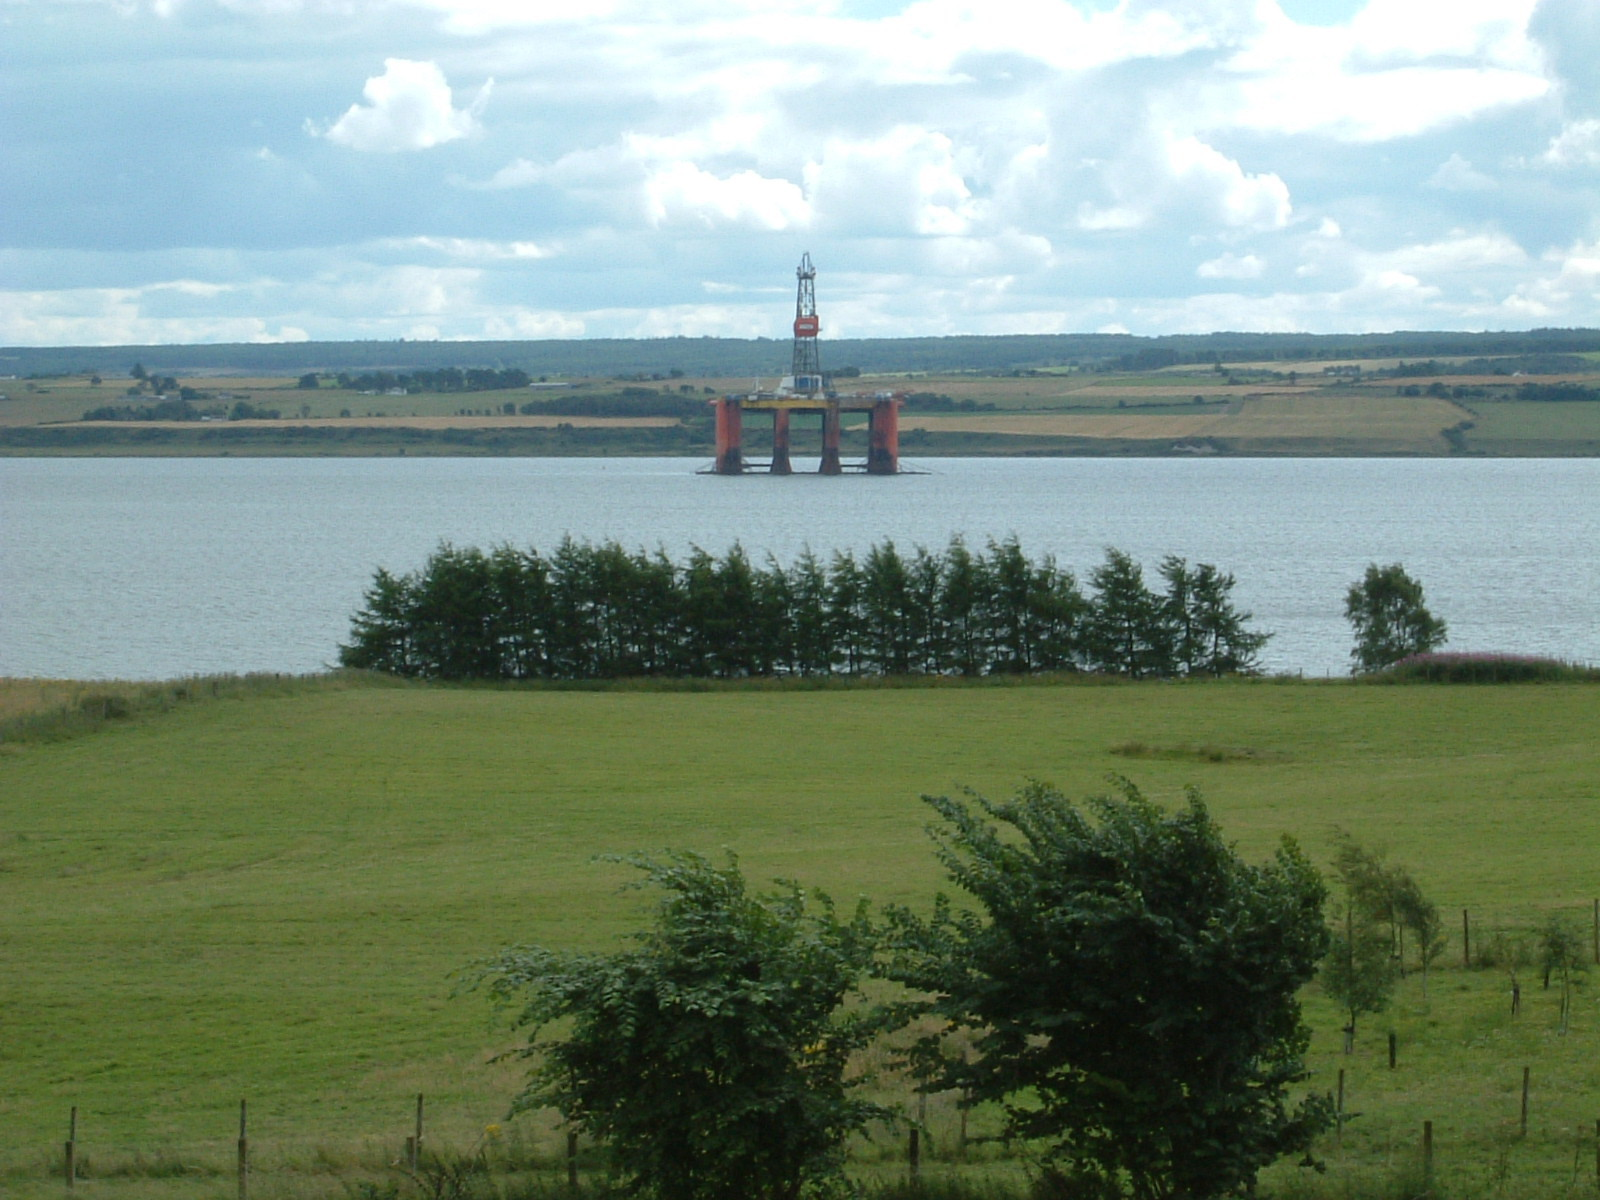 An oil rig in Cromarty Firth